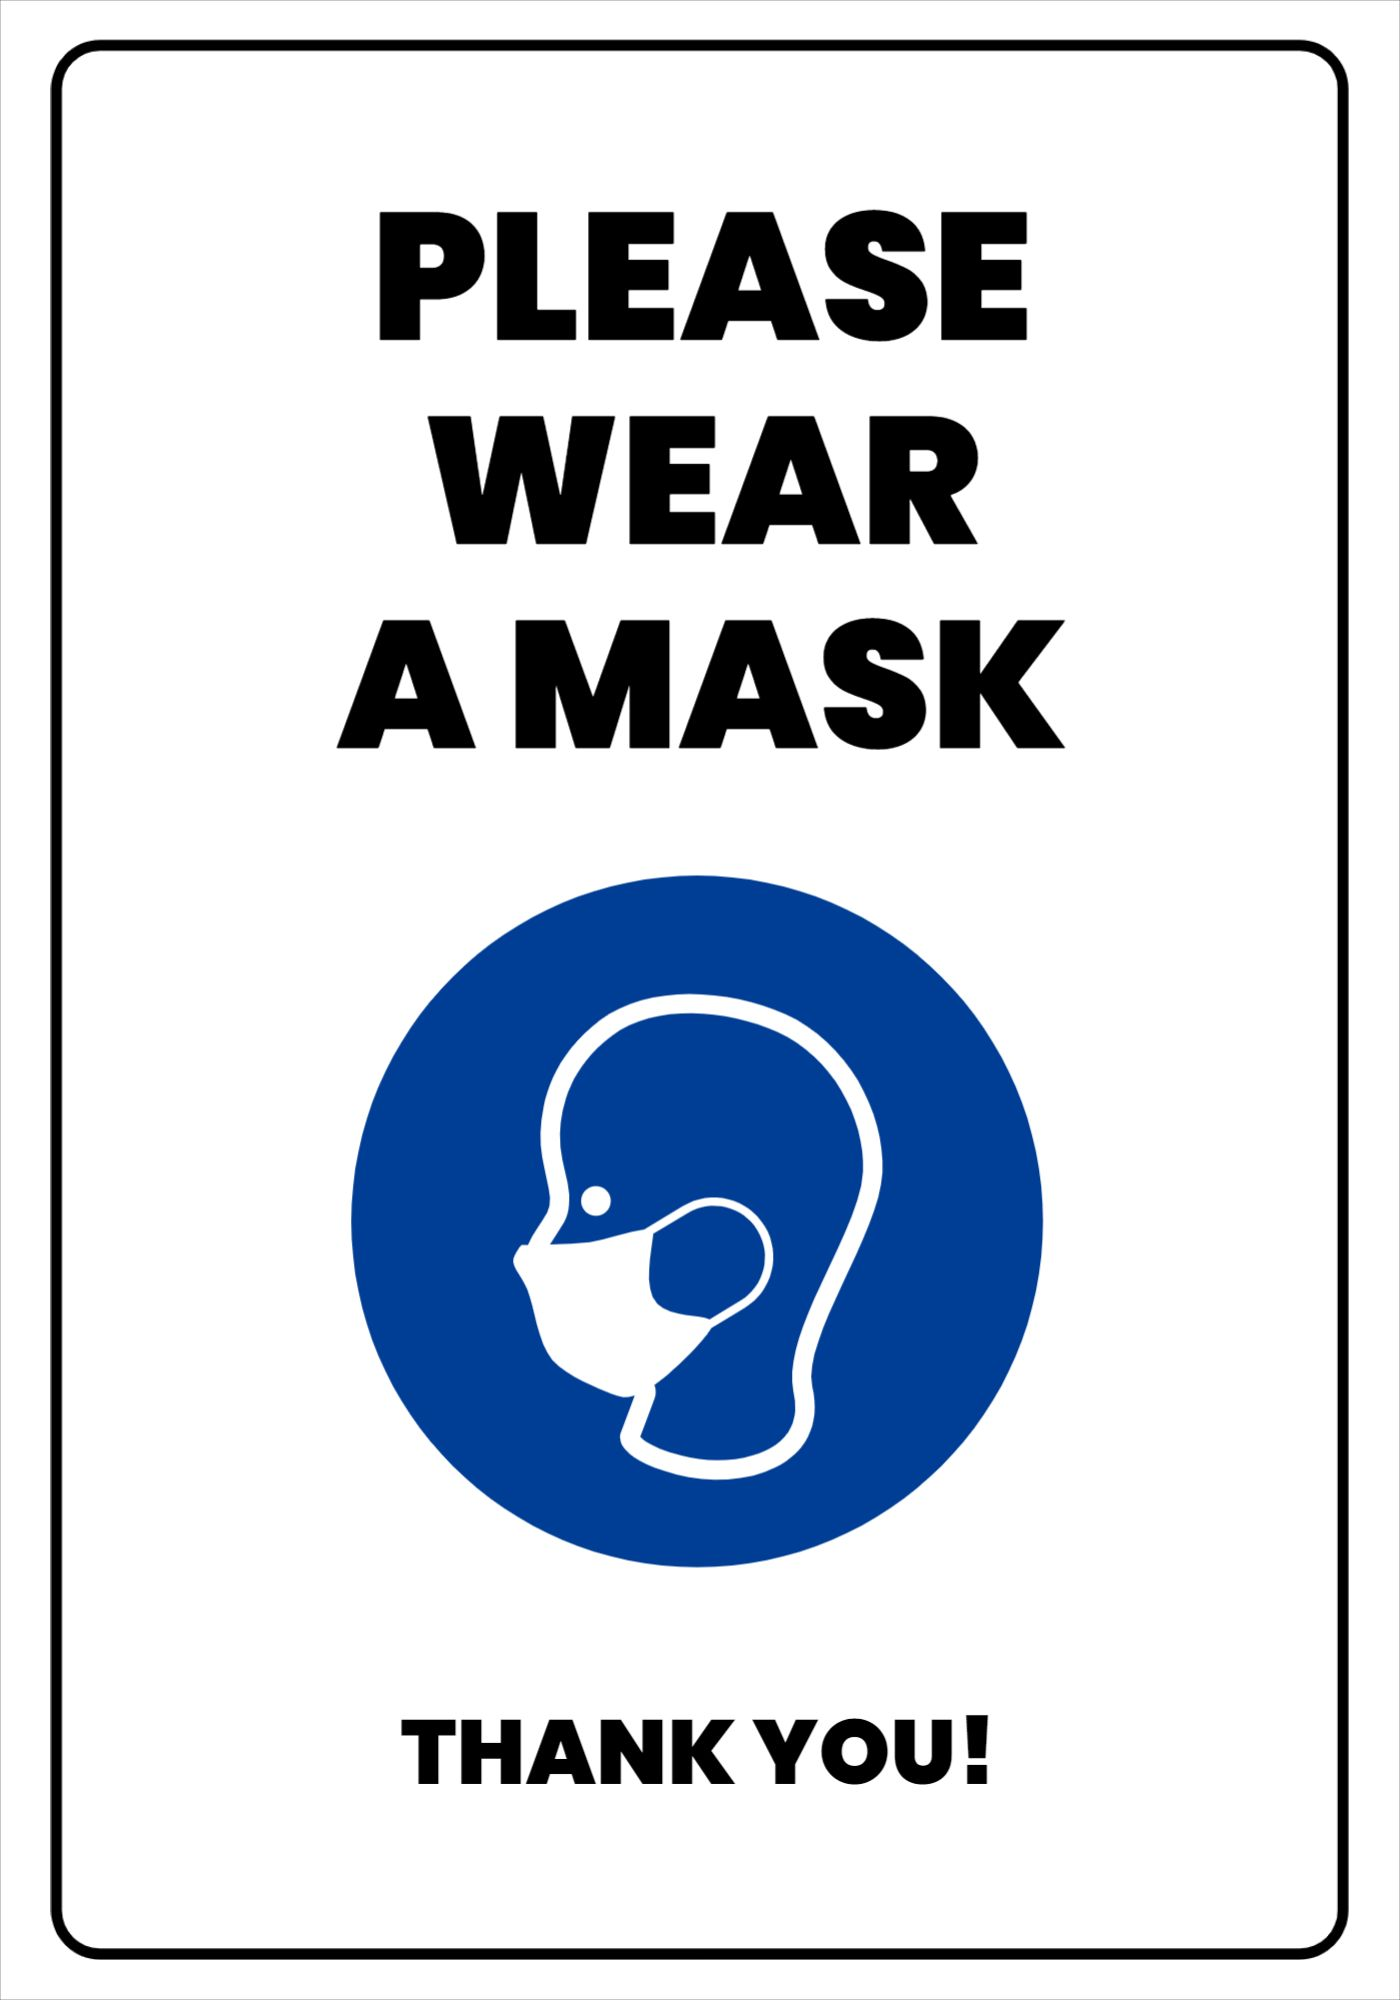 Wear a Mask Sign Template